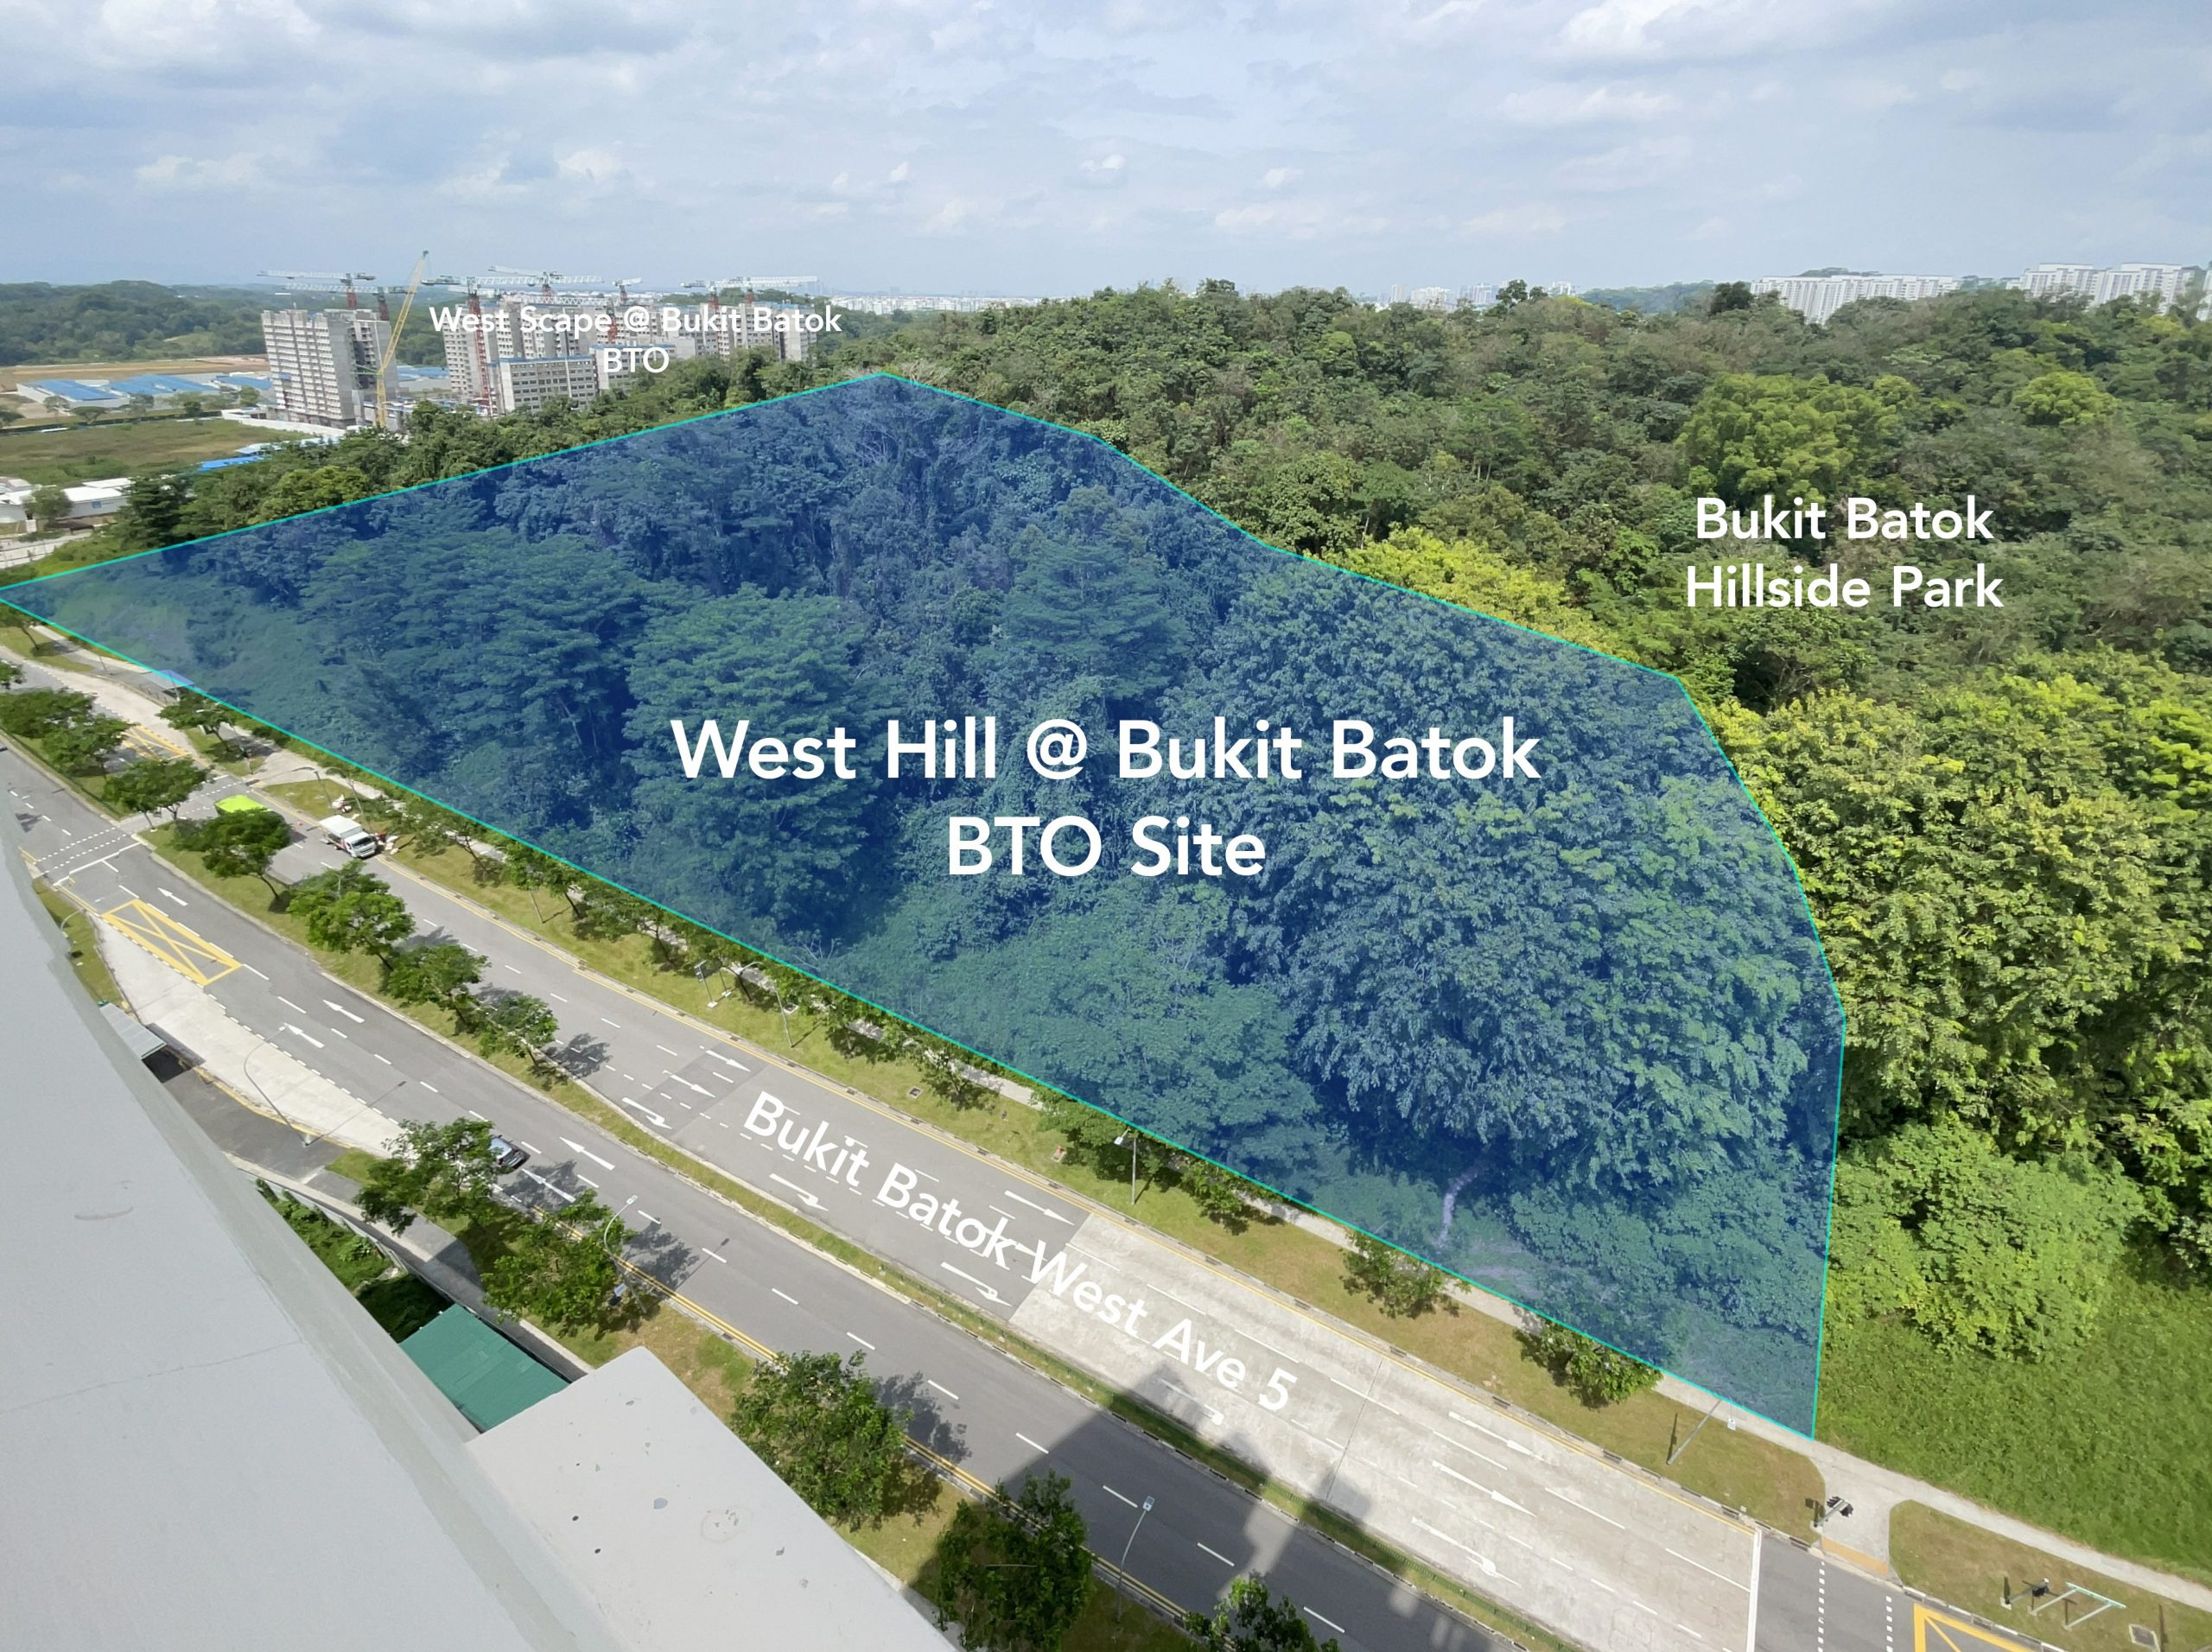 west hill bukit batok bto site